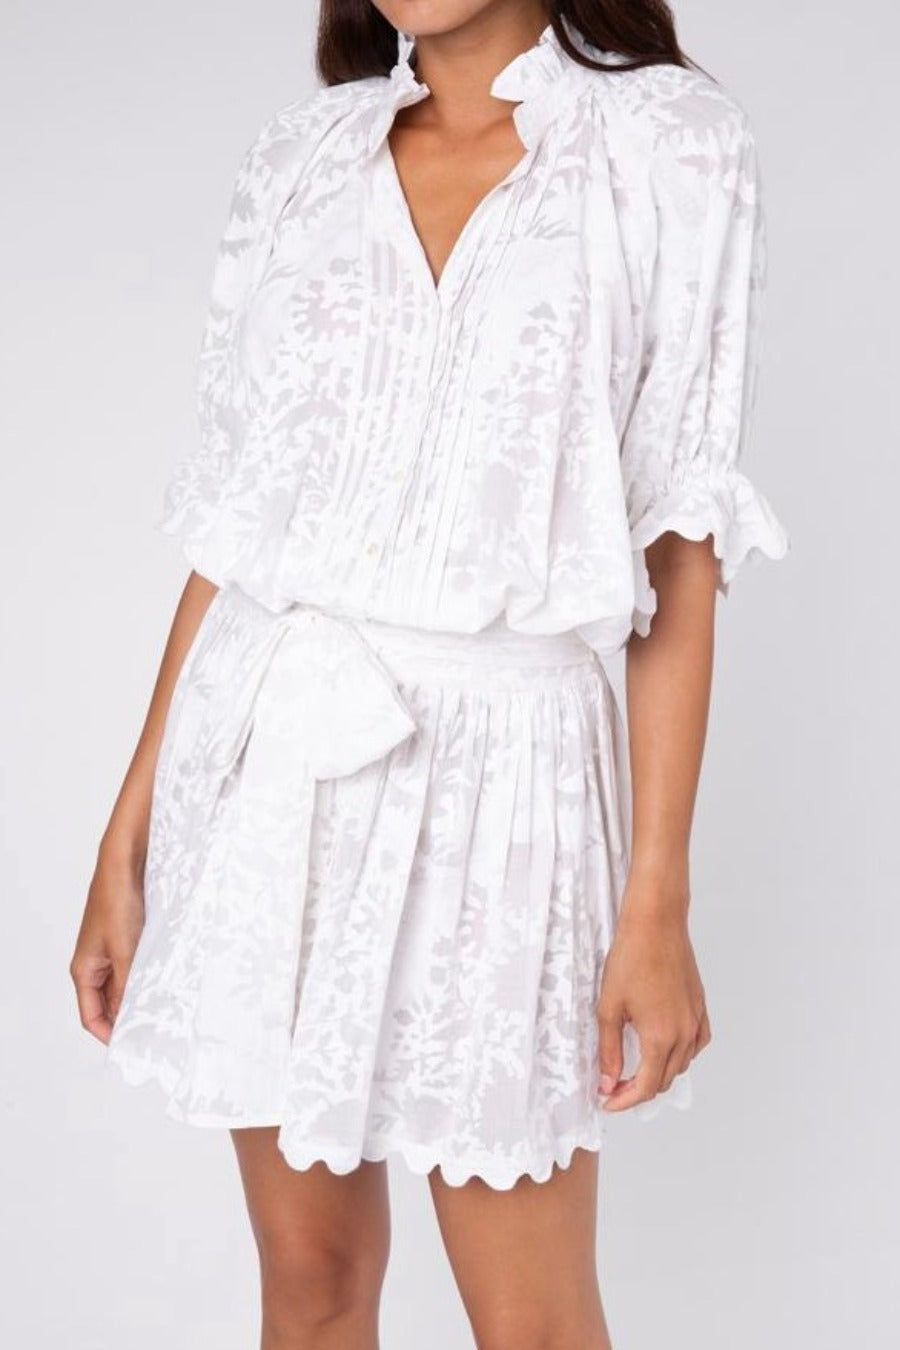 Palladio Print Blouson Dress- White